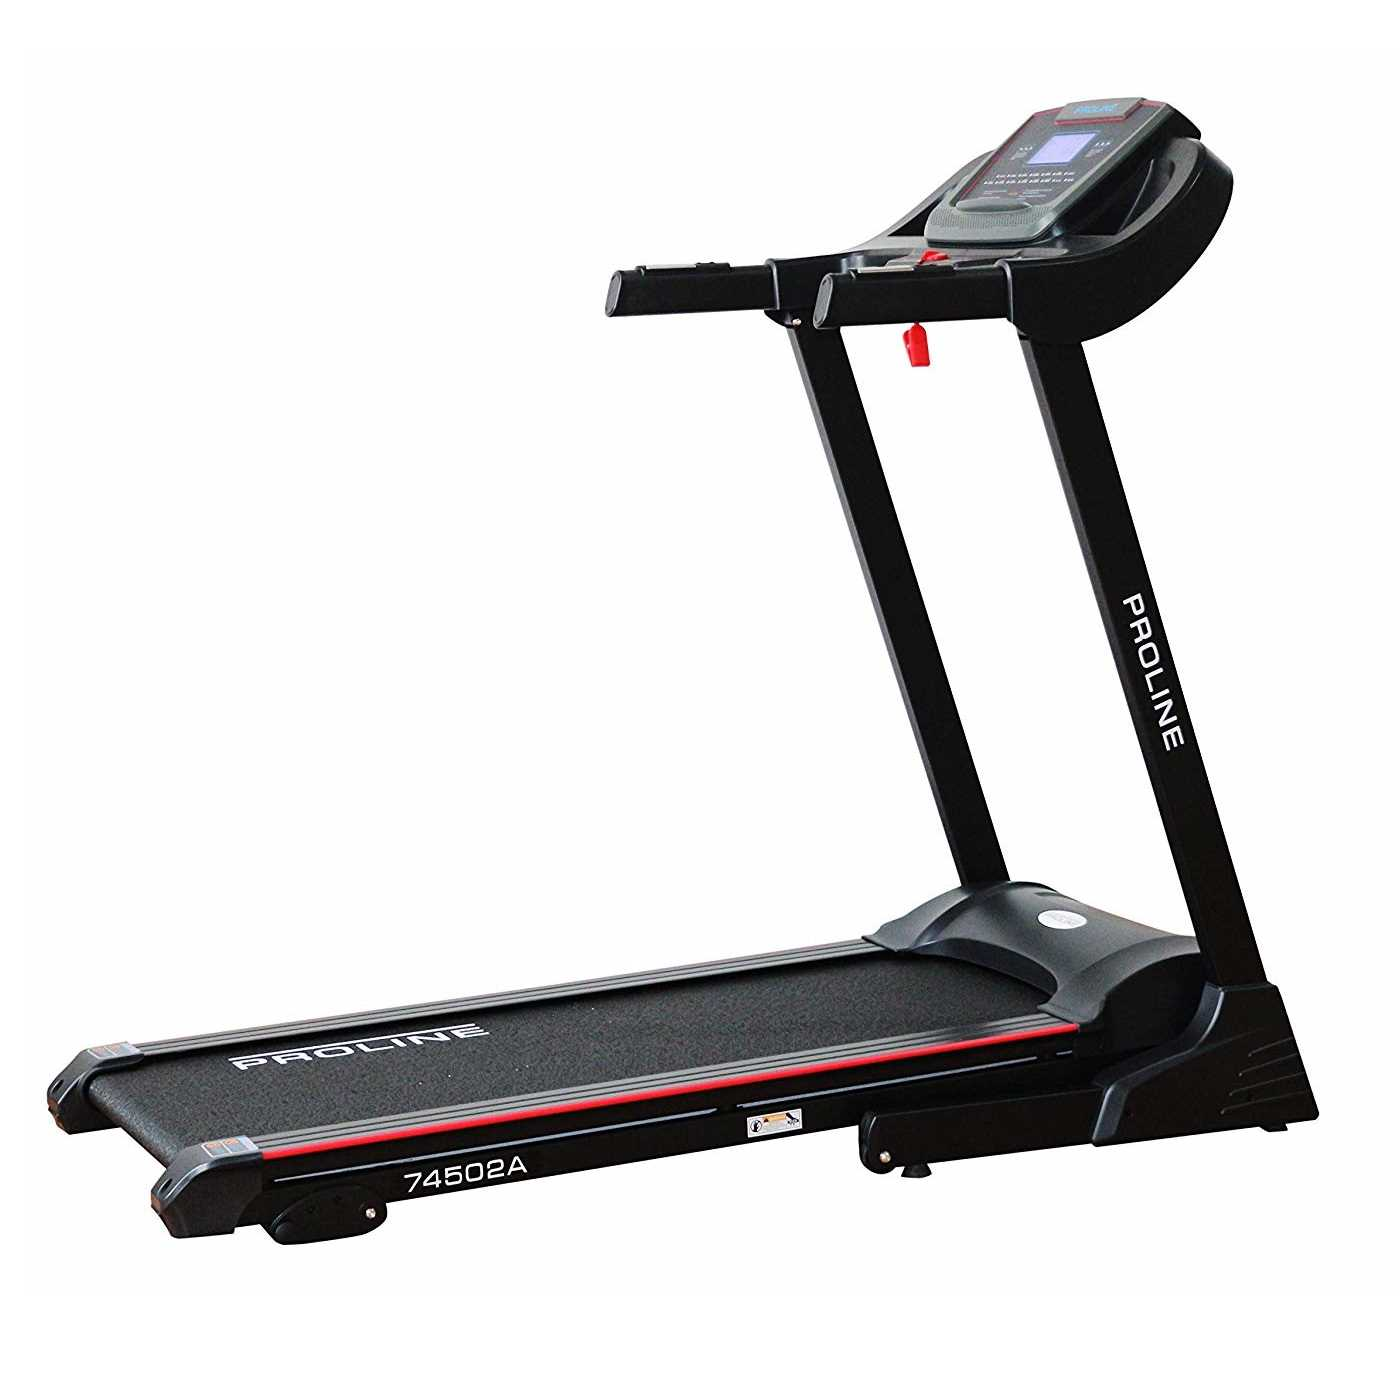 Proline Fitness 74502A Motorized Treadmill